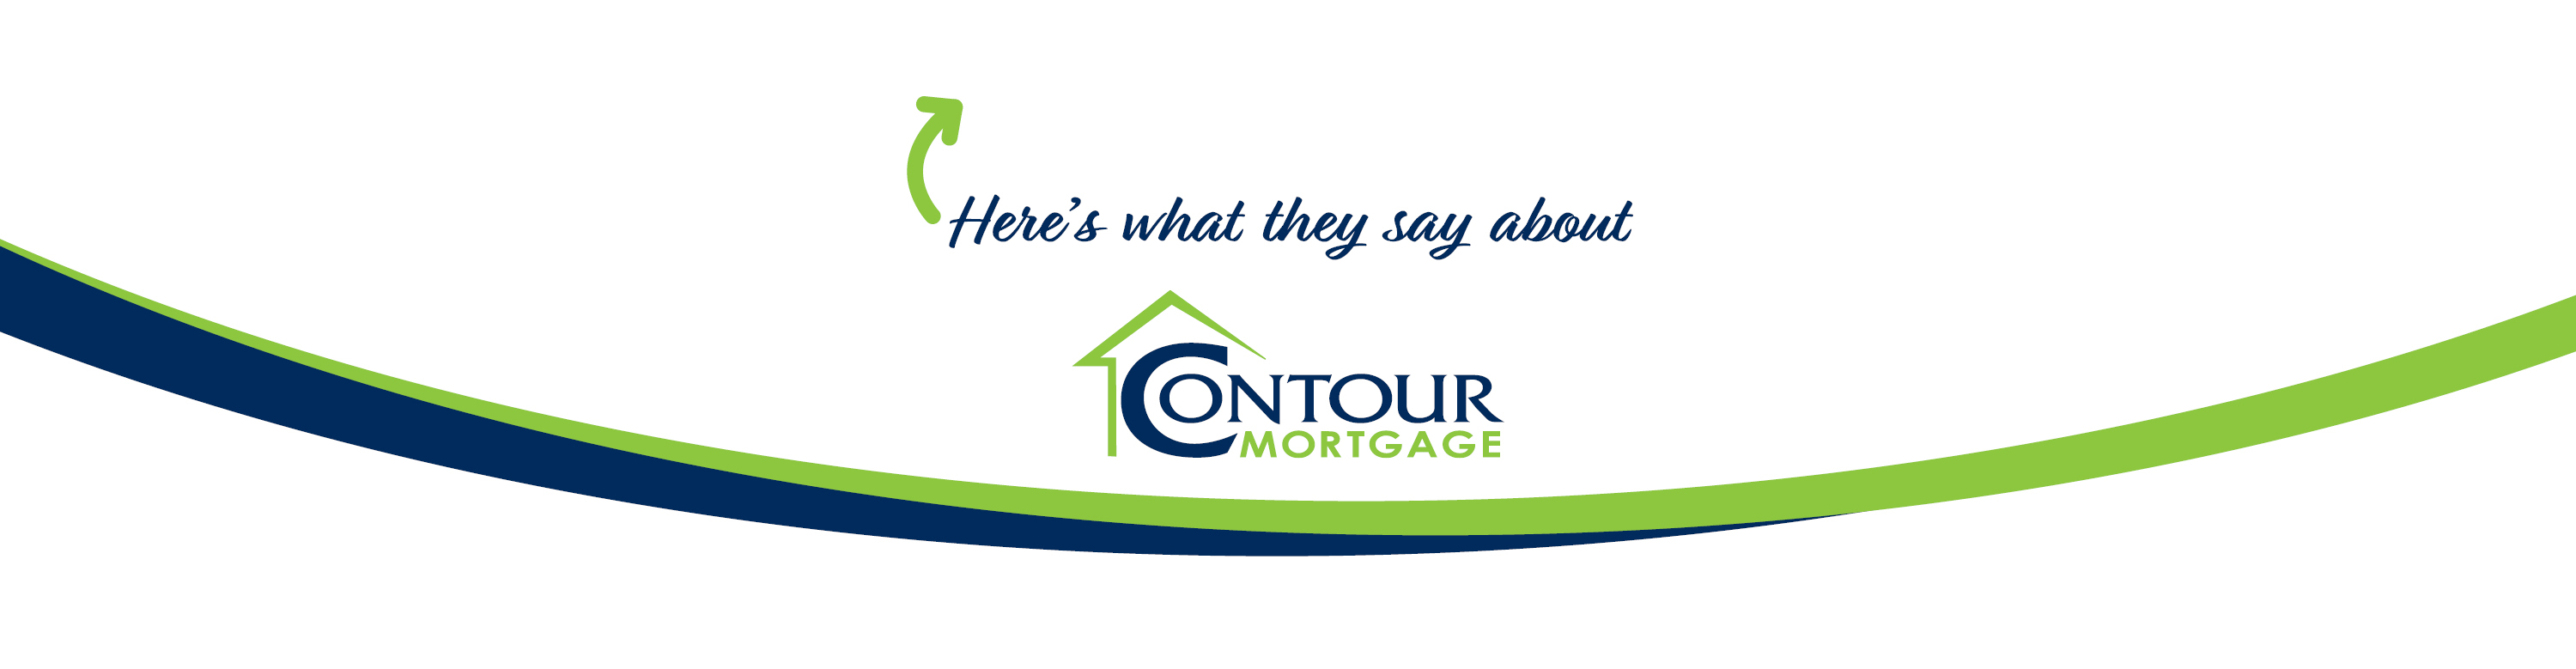 Contour Mortgage Corporation reviews | Mortgage Lenders at 990 Stewart Ave - Garden City NY